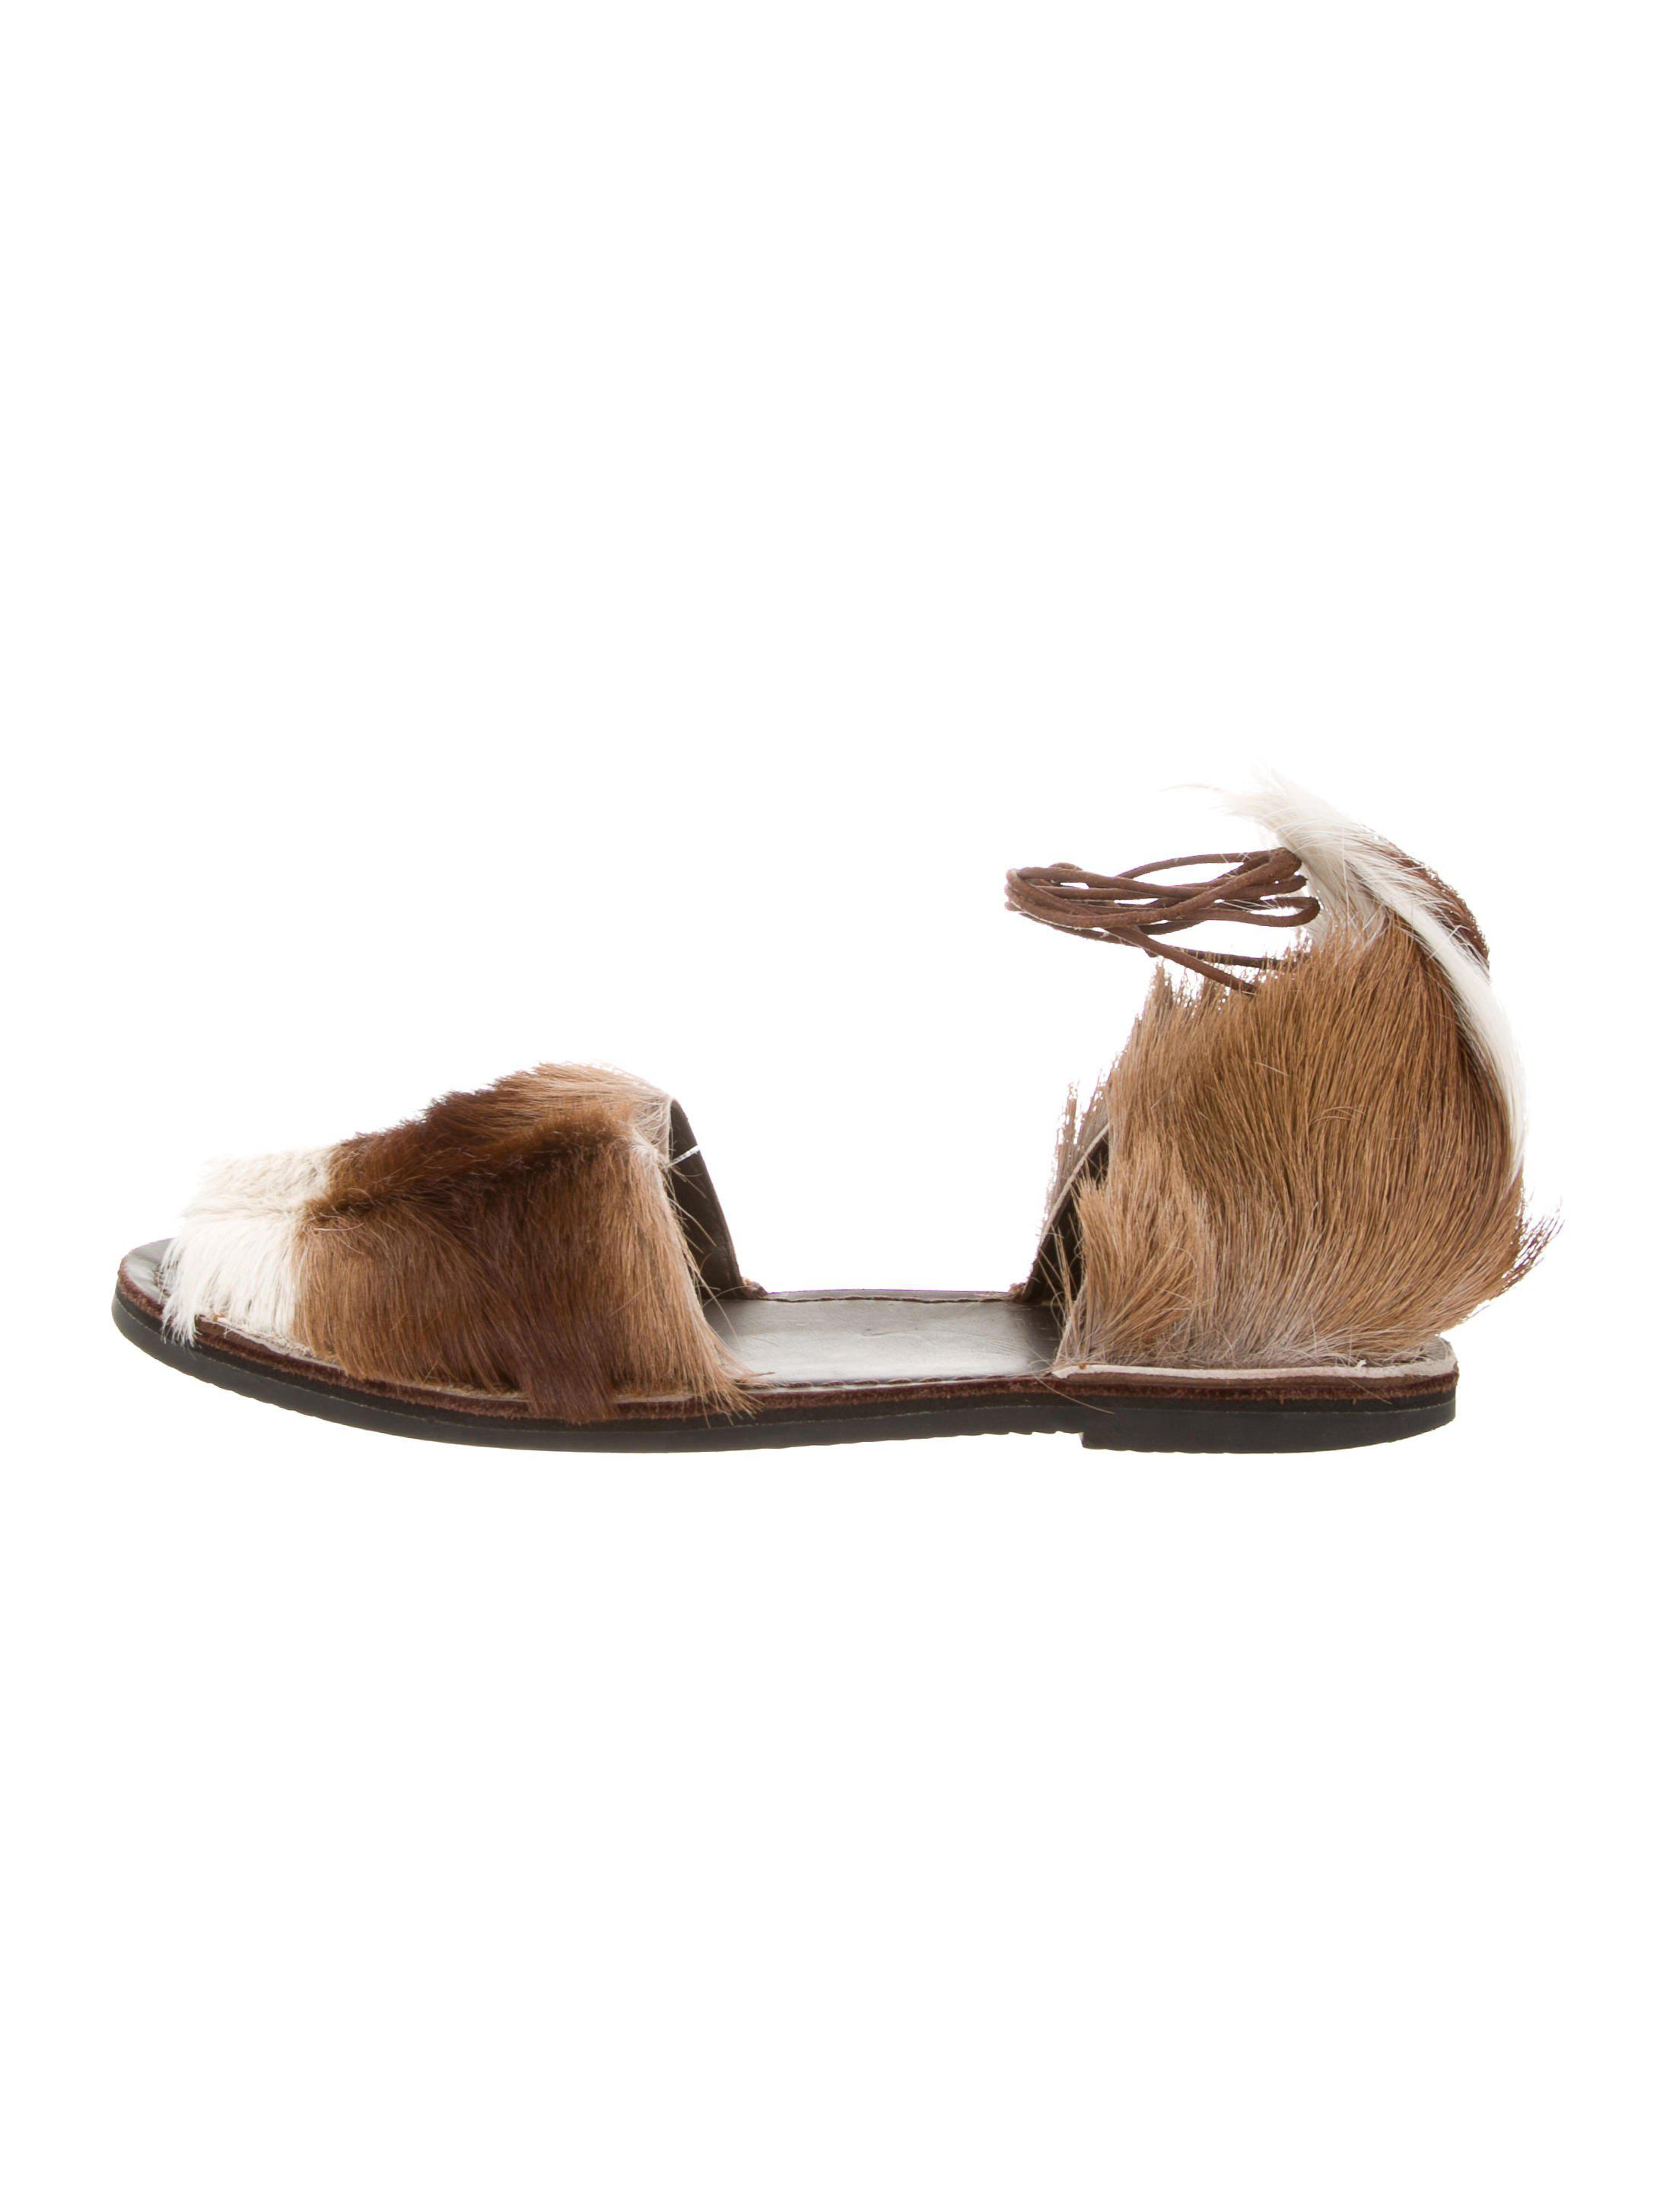 discount collections cheap sale 100% authentic Brother Vellies Multicolor Wrap-Around Sandals outlet store cheap price cheap release dates cTd1PT36k